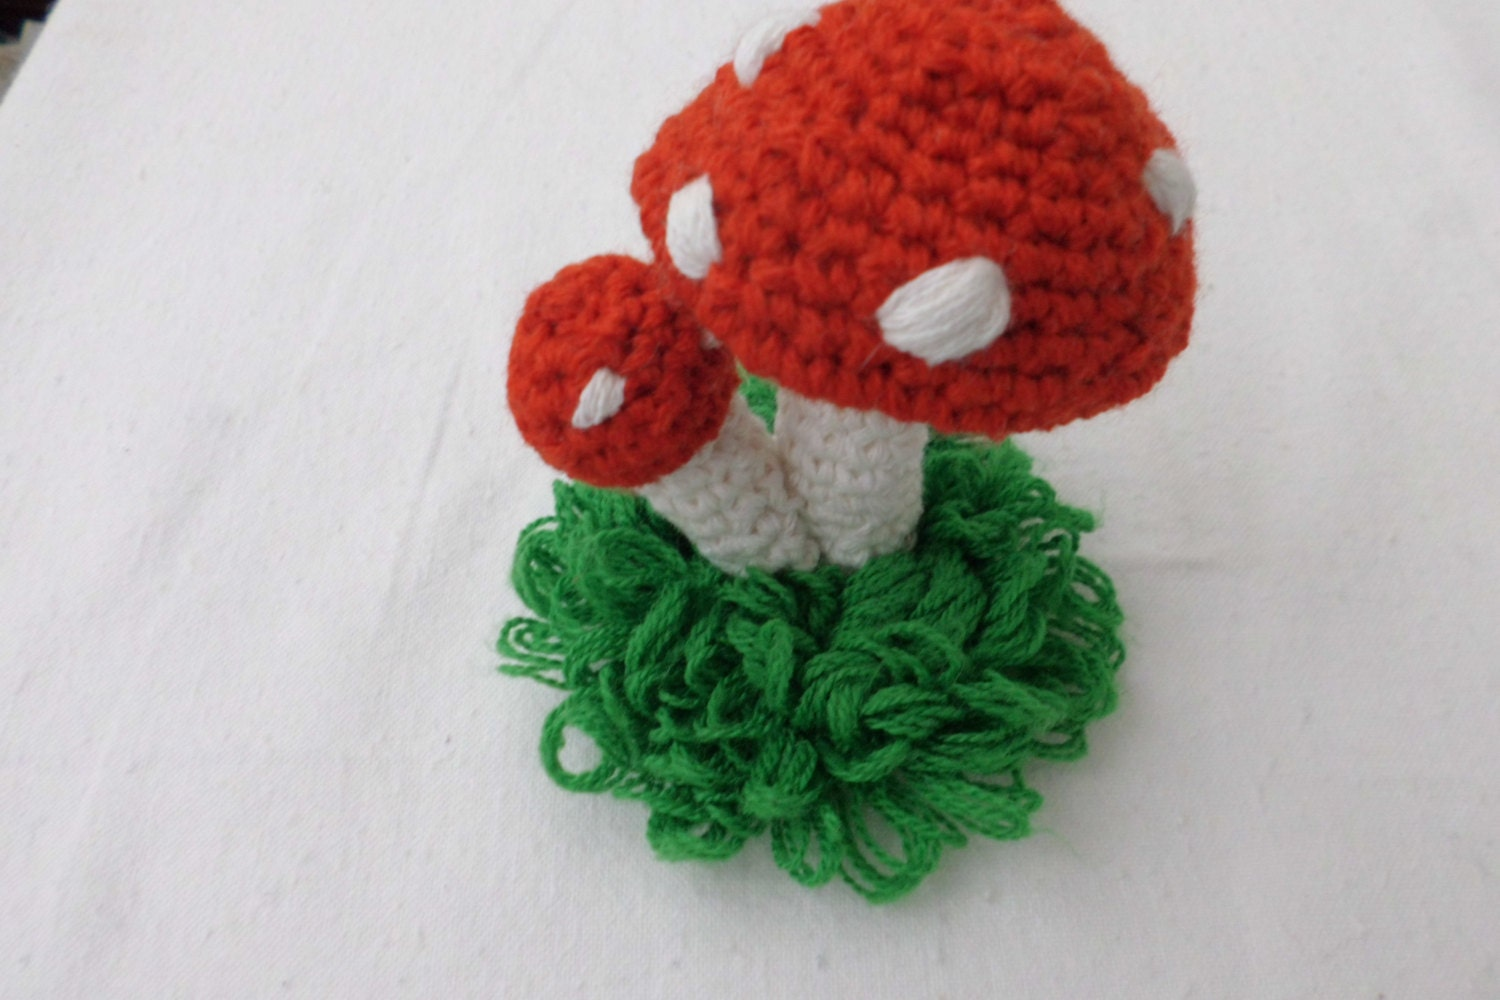 Amigurumi red mushrooms crochet mushrooms decor toadstool